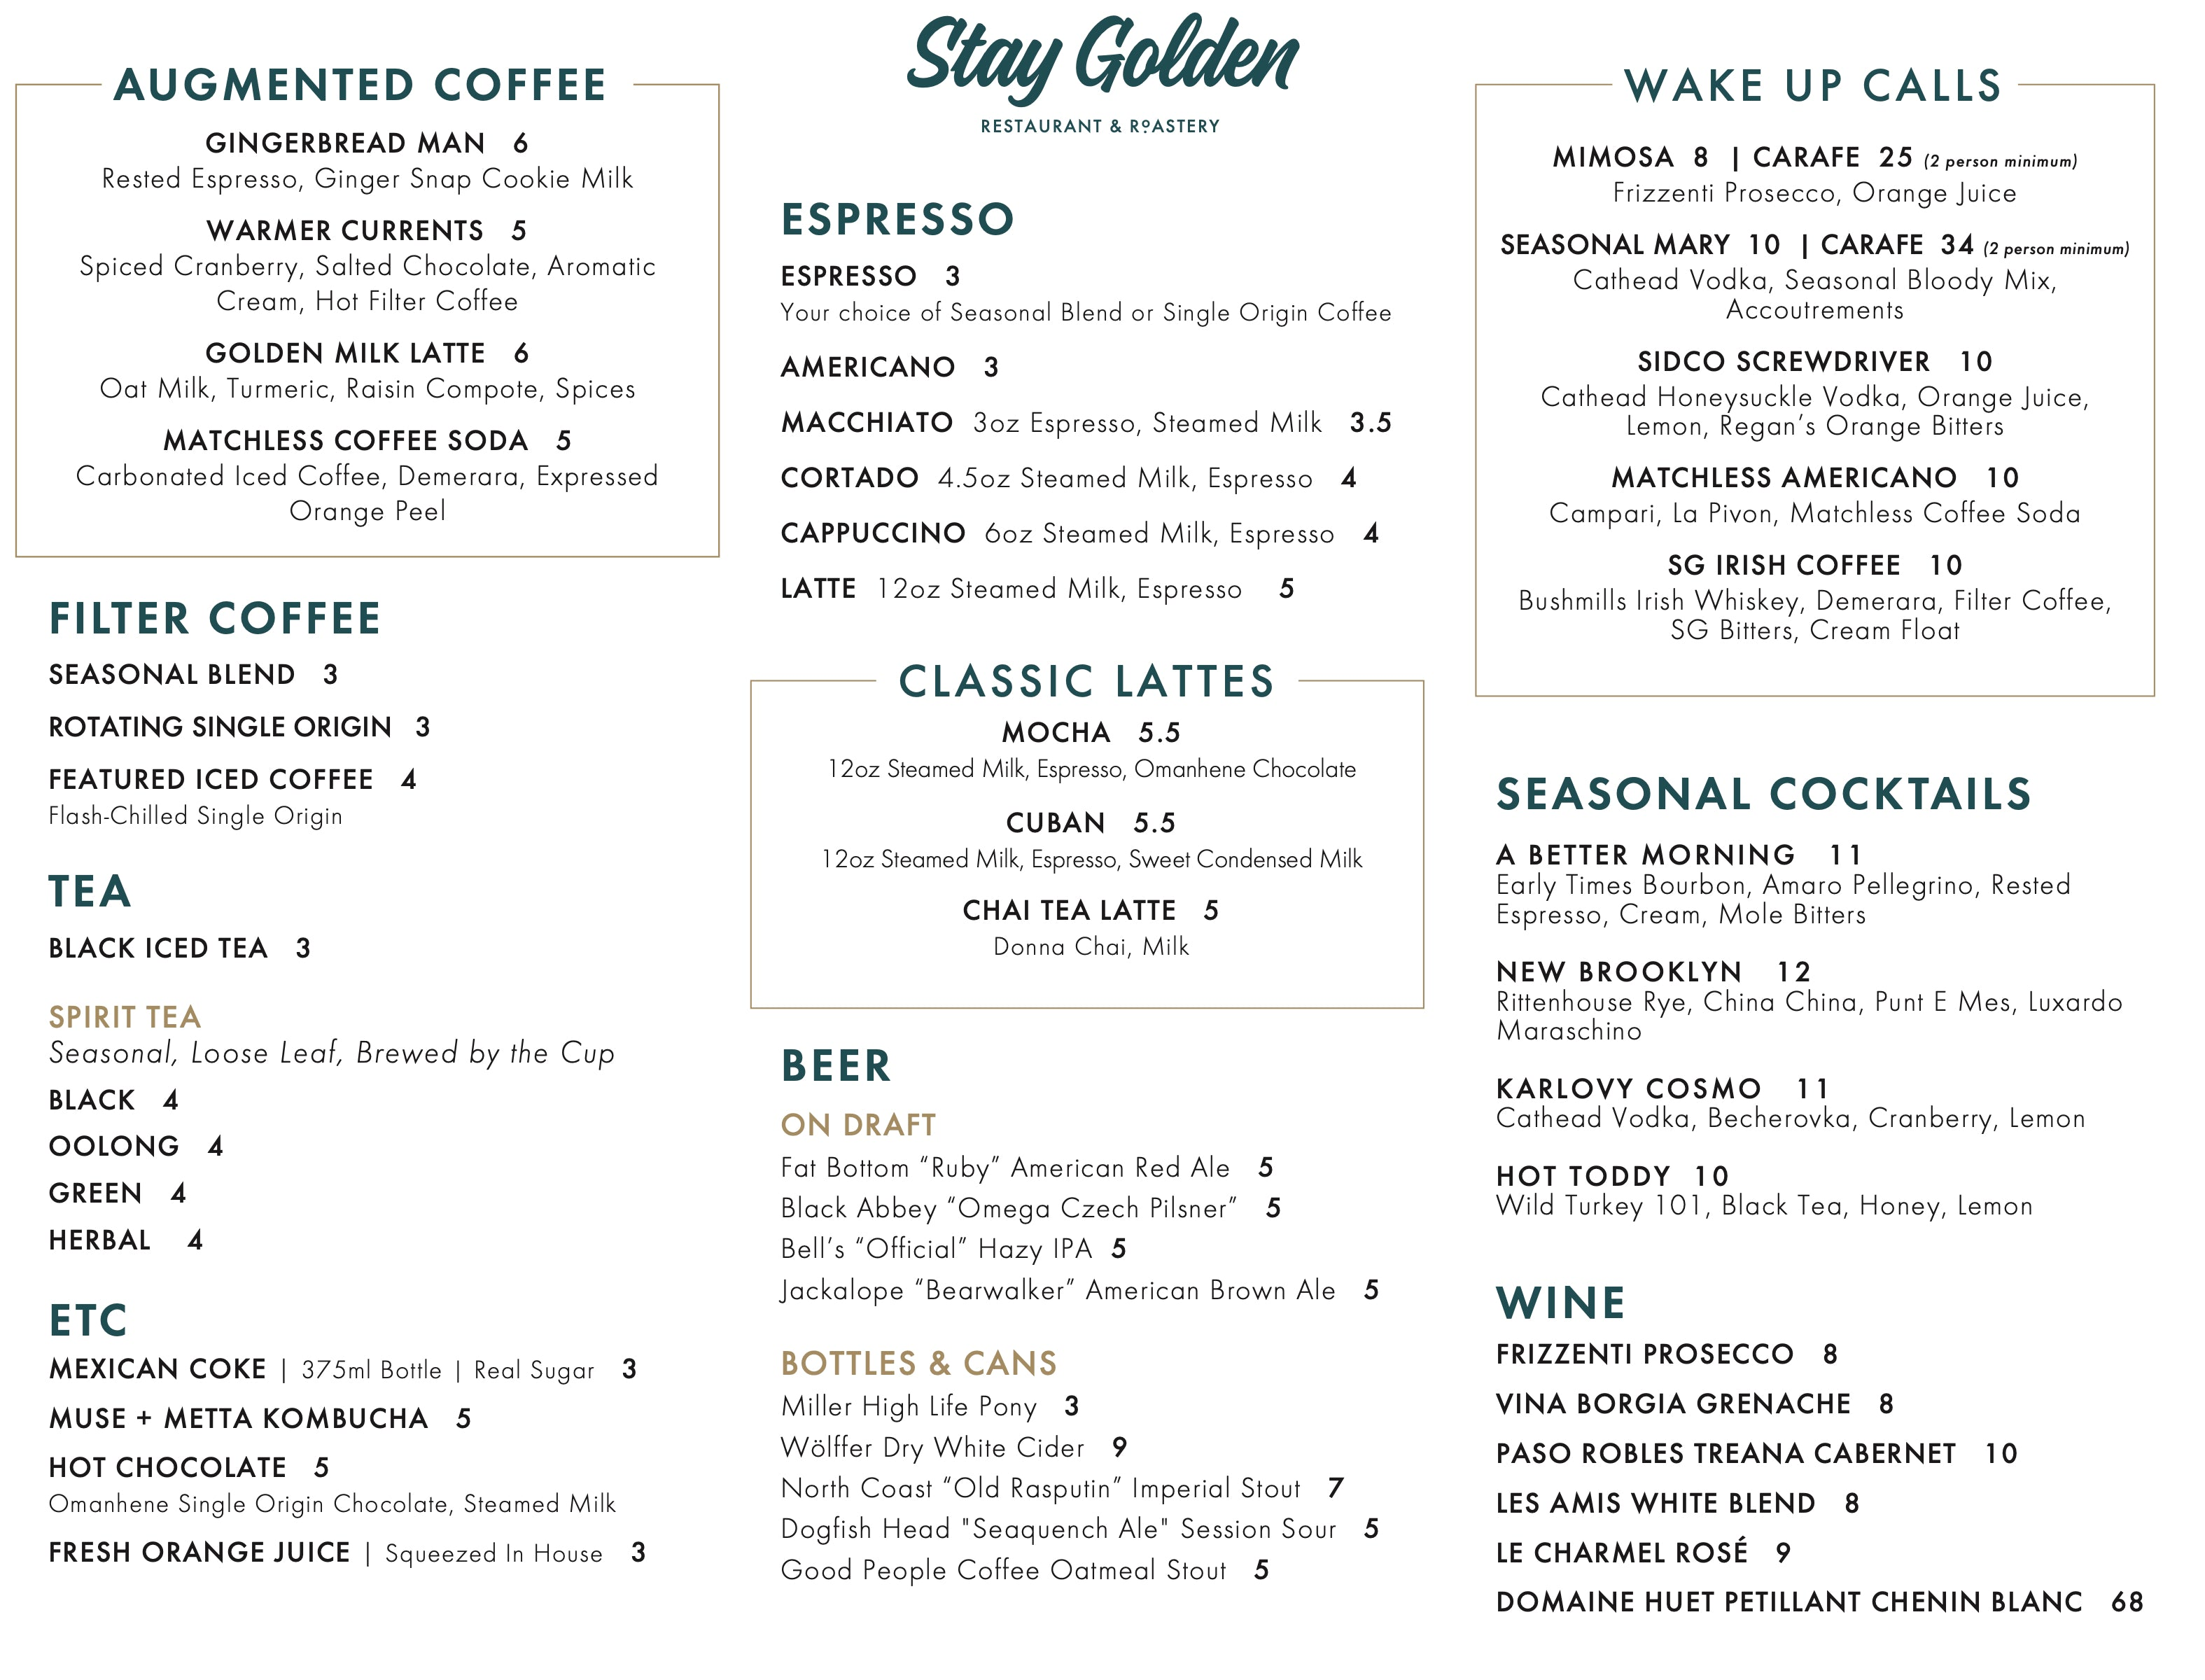 Stay Golden Menu